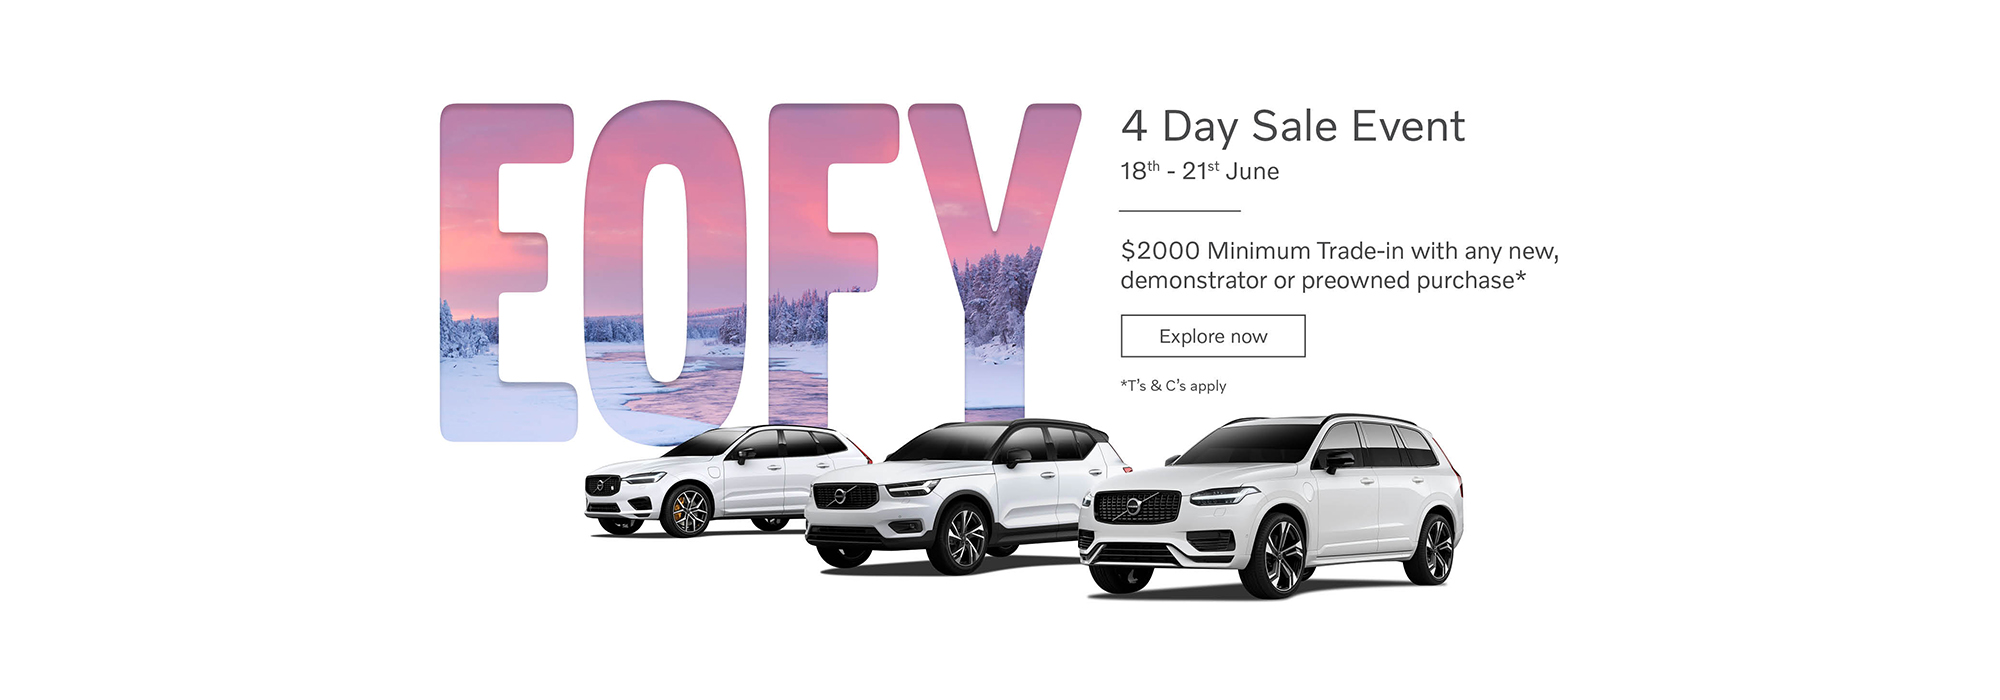 Volvo 4 Day Sale Event. 18th - 21st of June